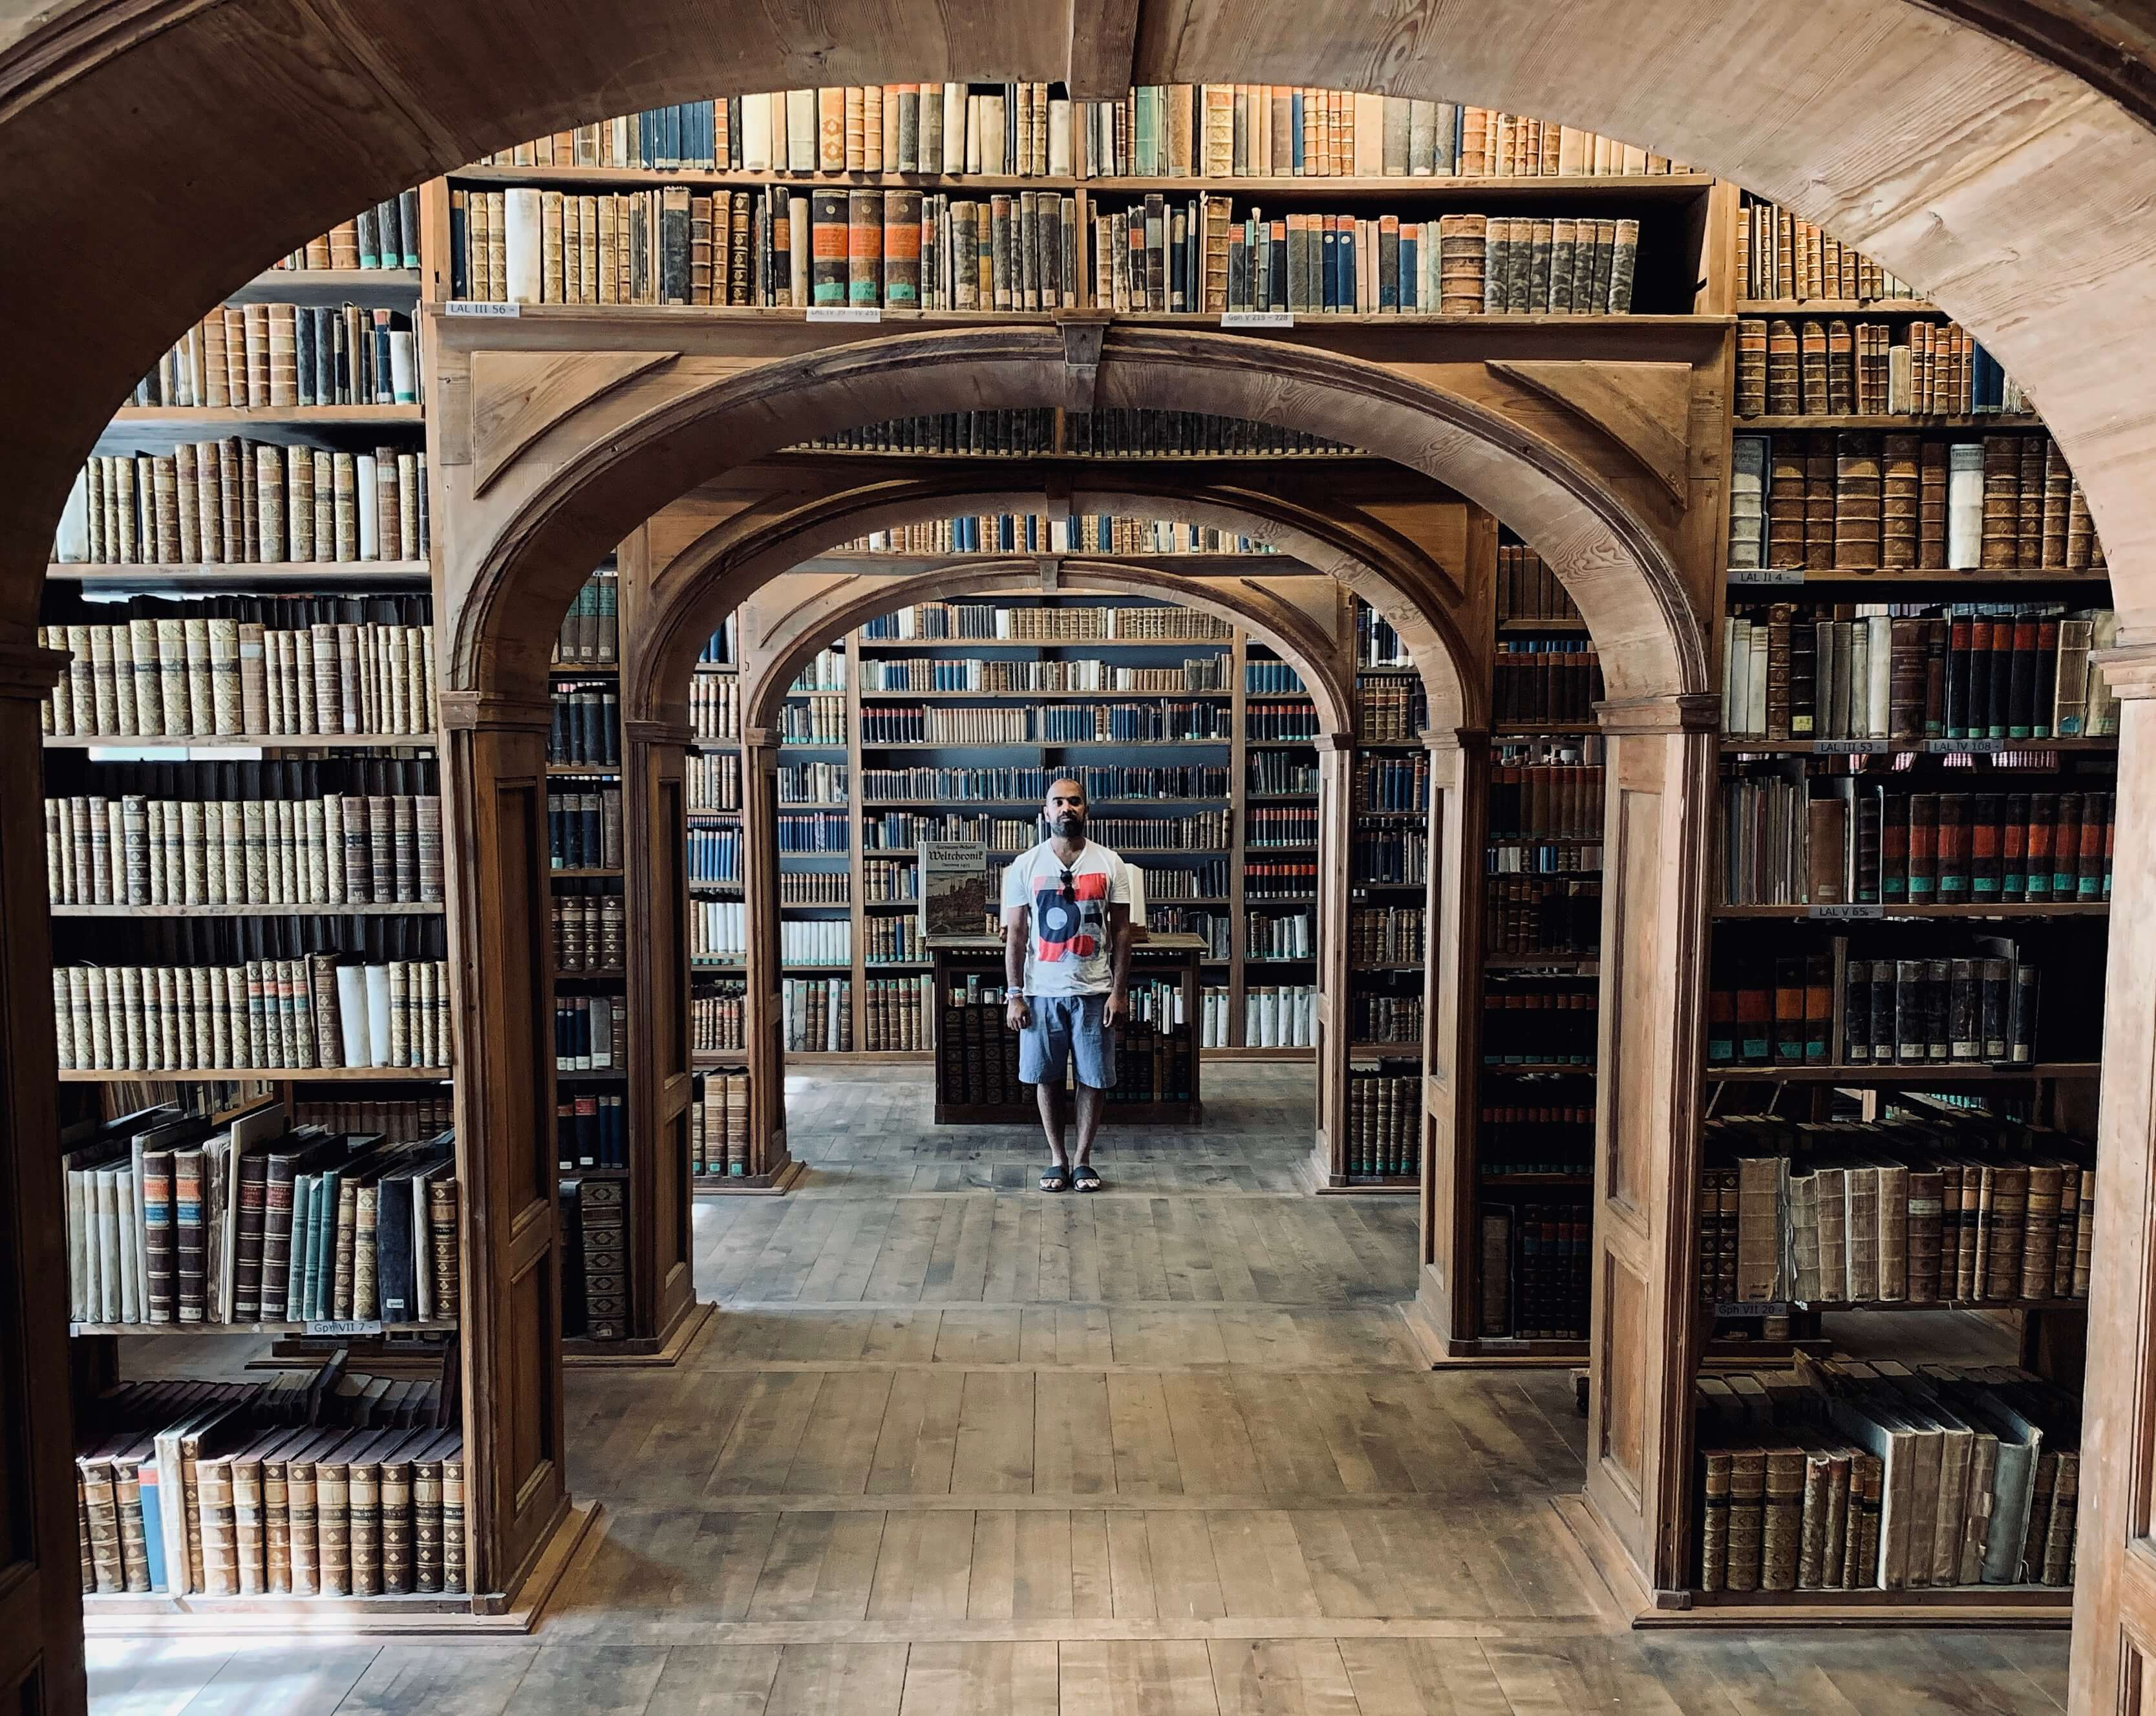 Upper Lusatian Library of Sciences-the most beautiful library in Germany possibly